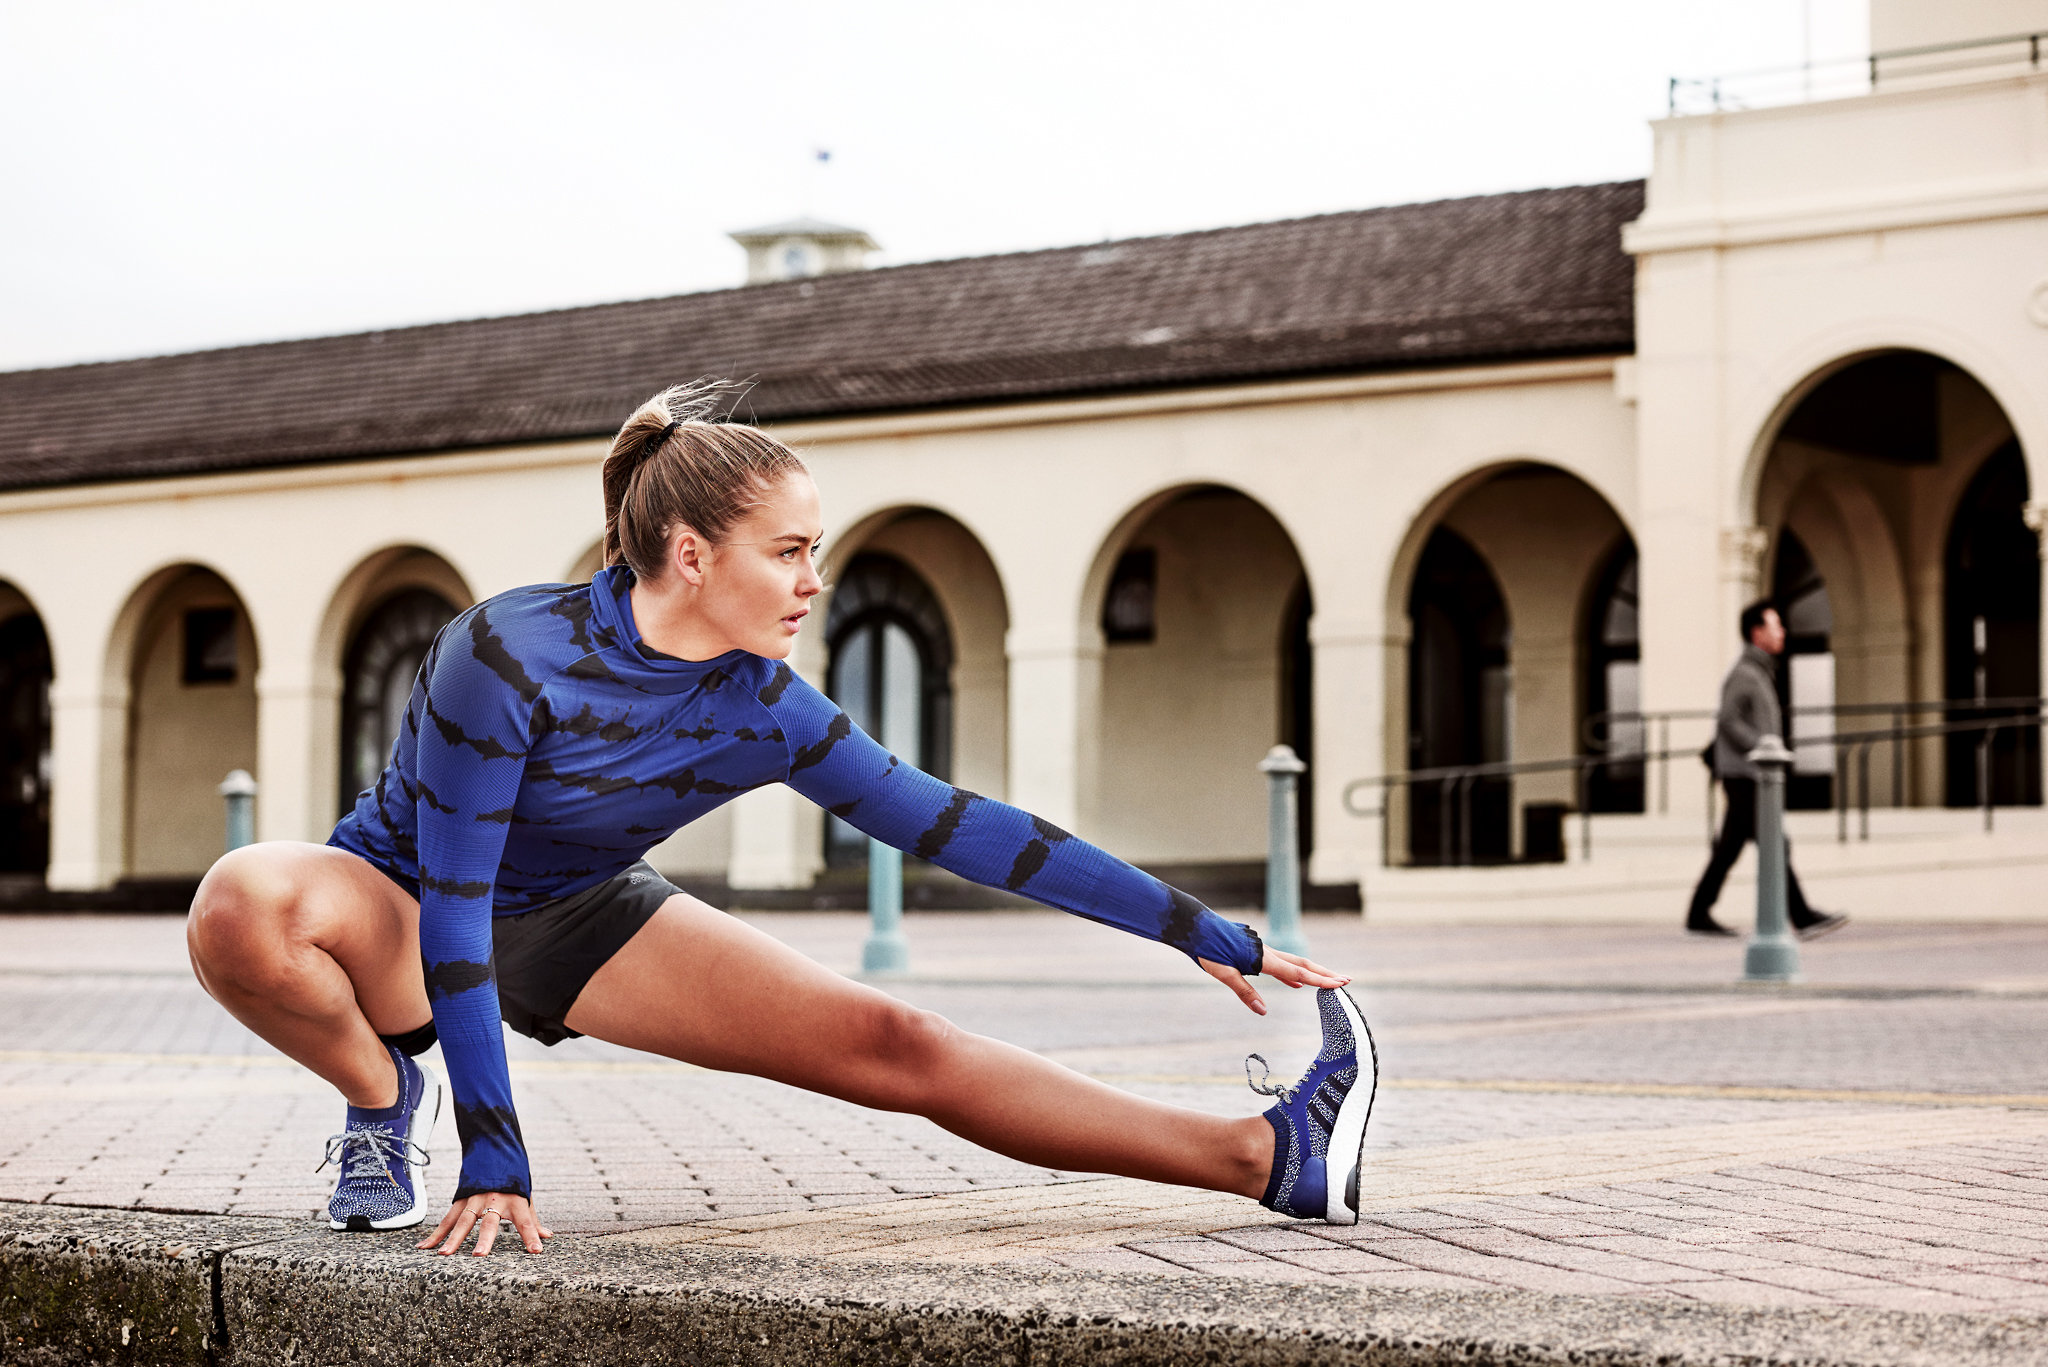 Steph Claire Smith in Bondi, for Adidas Australia.